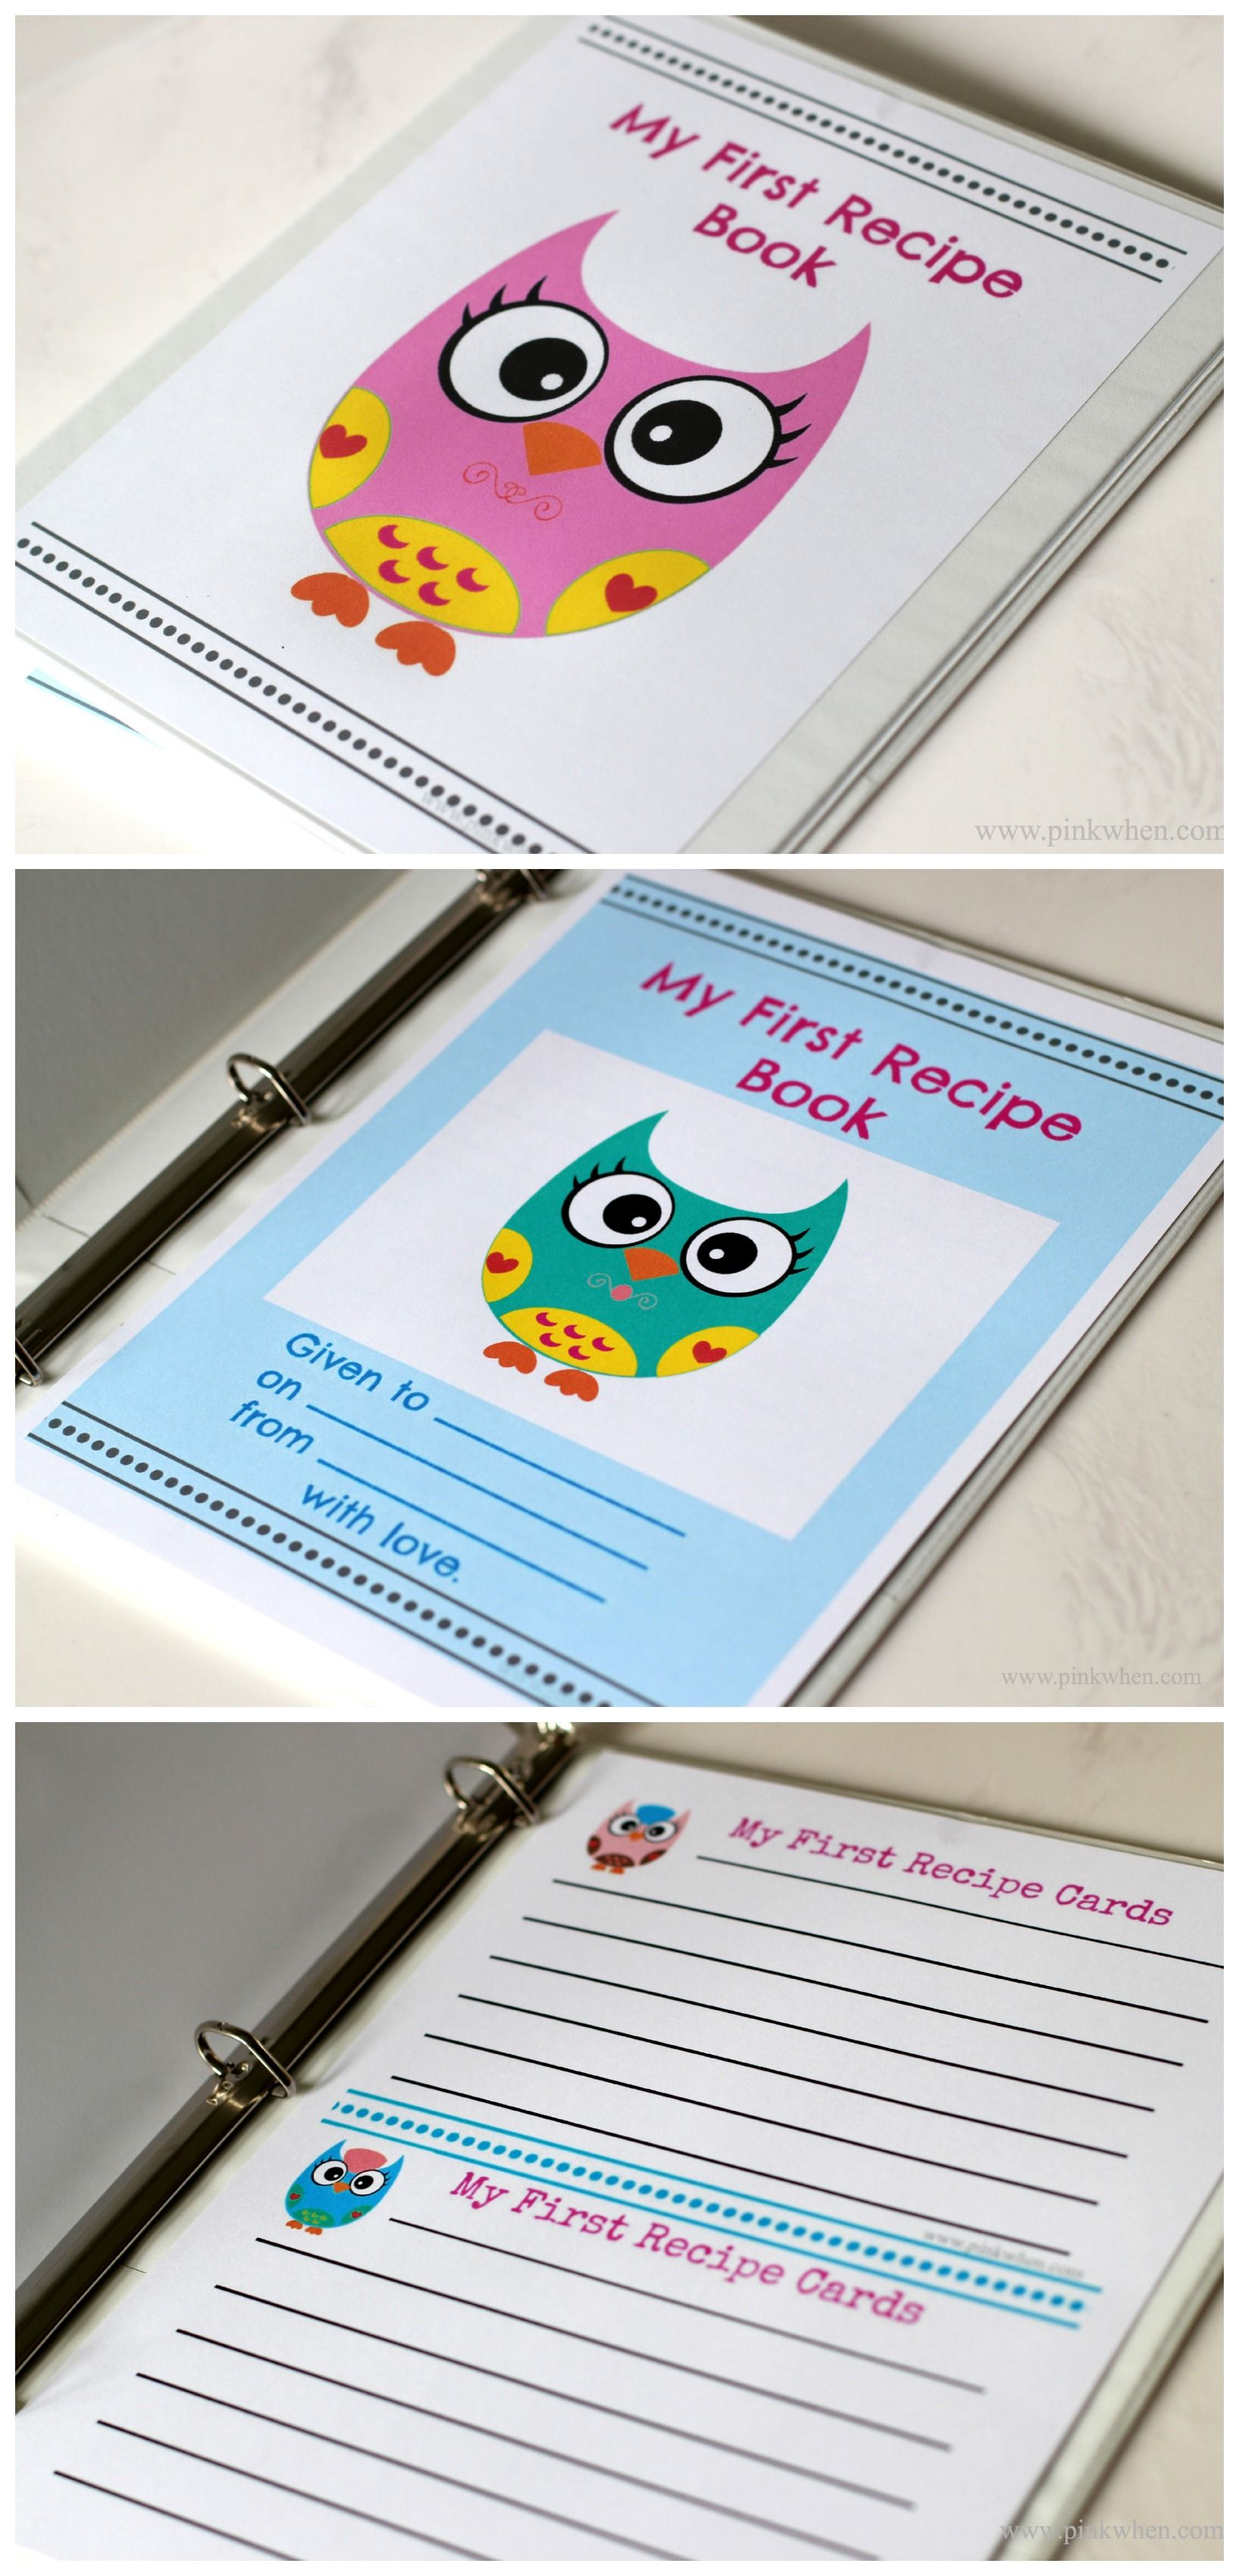 Cookbook Cover Template Maker ~ A sweet set of owl printables for the little ones fist recipe book